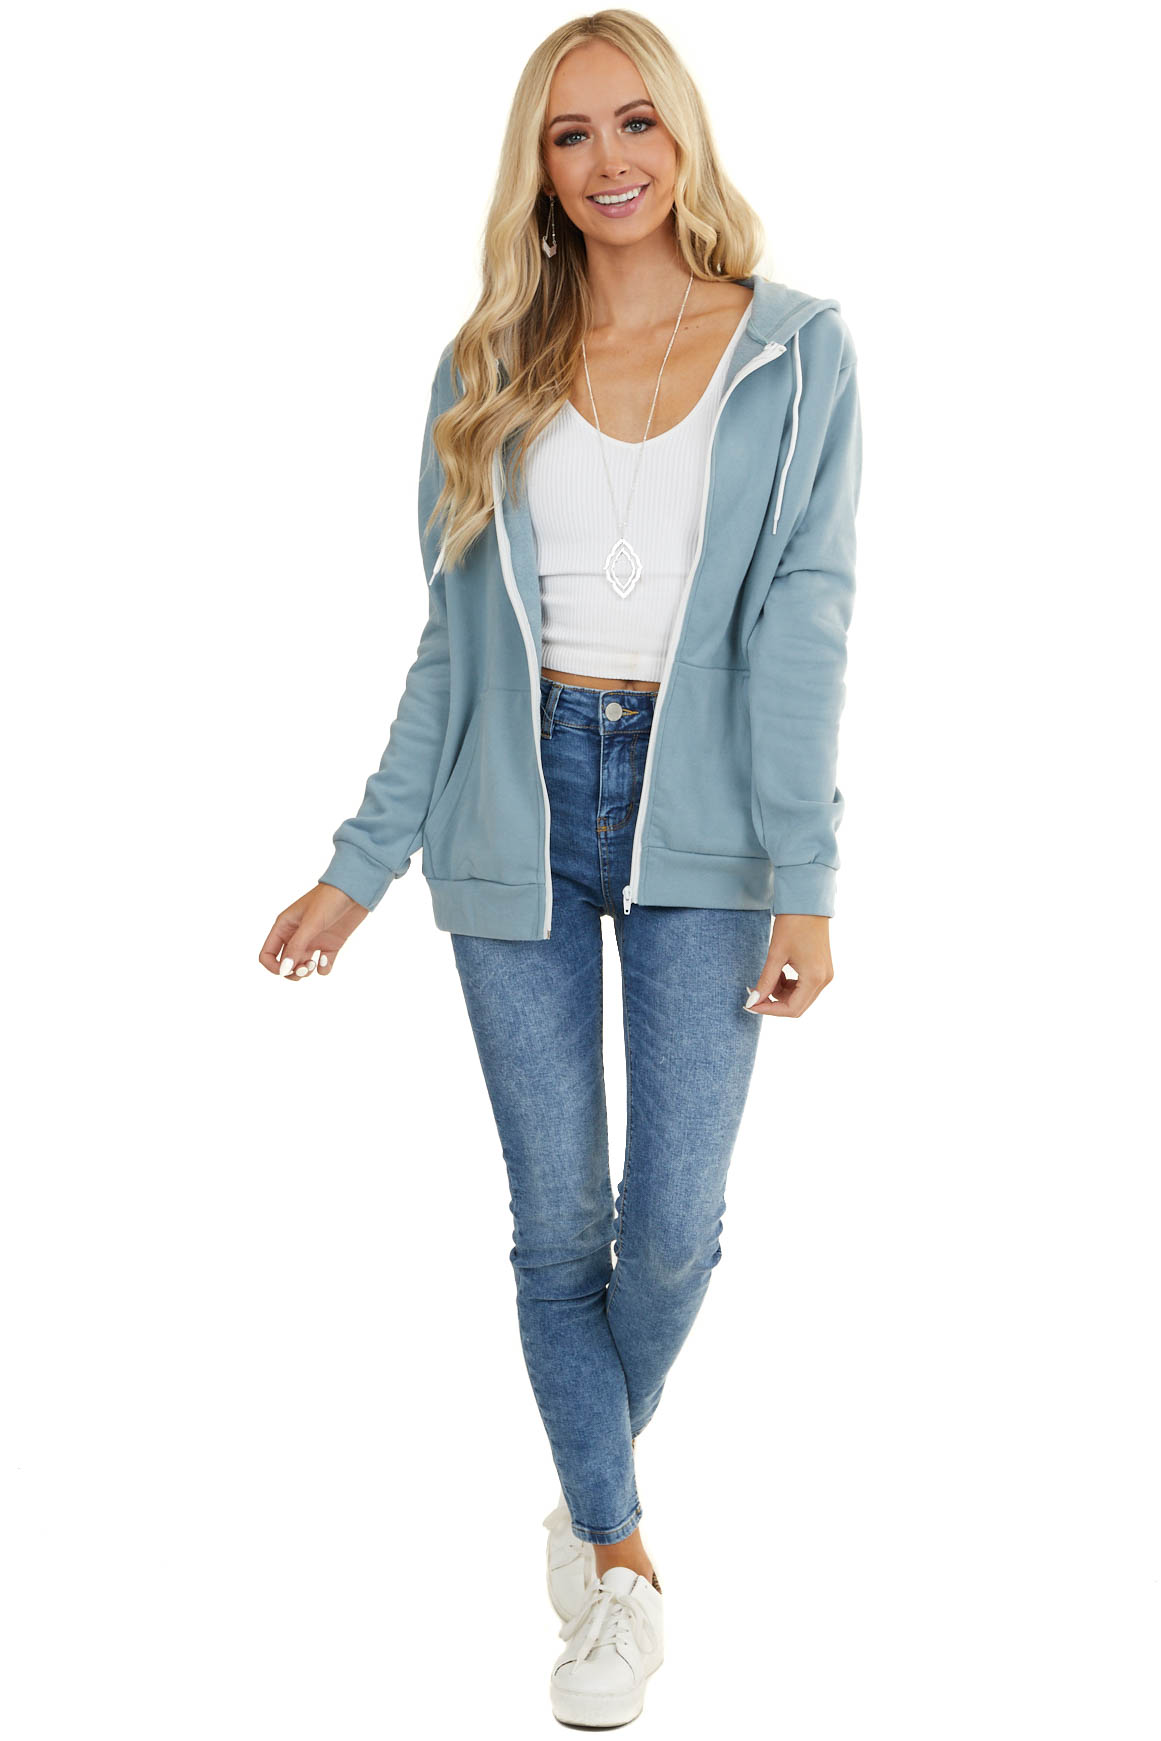 Powder Blue Zip Up Hoodie with White Drawstrings and Pockets